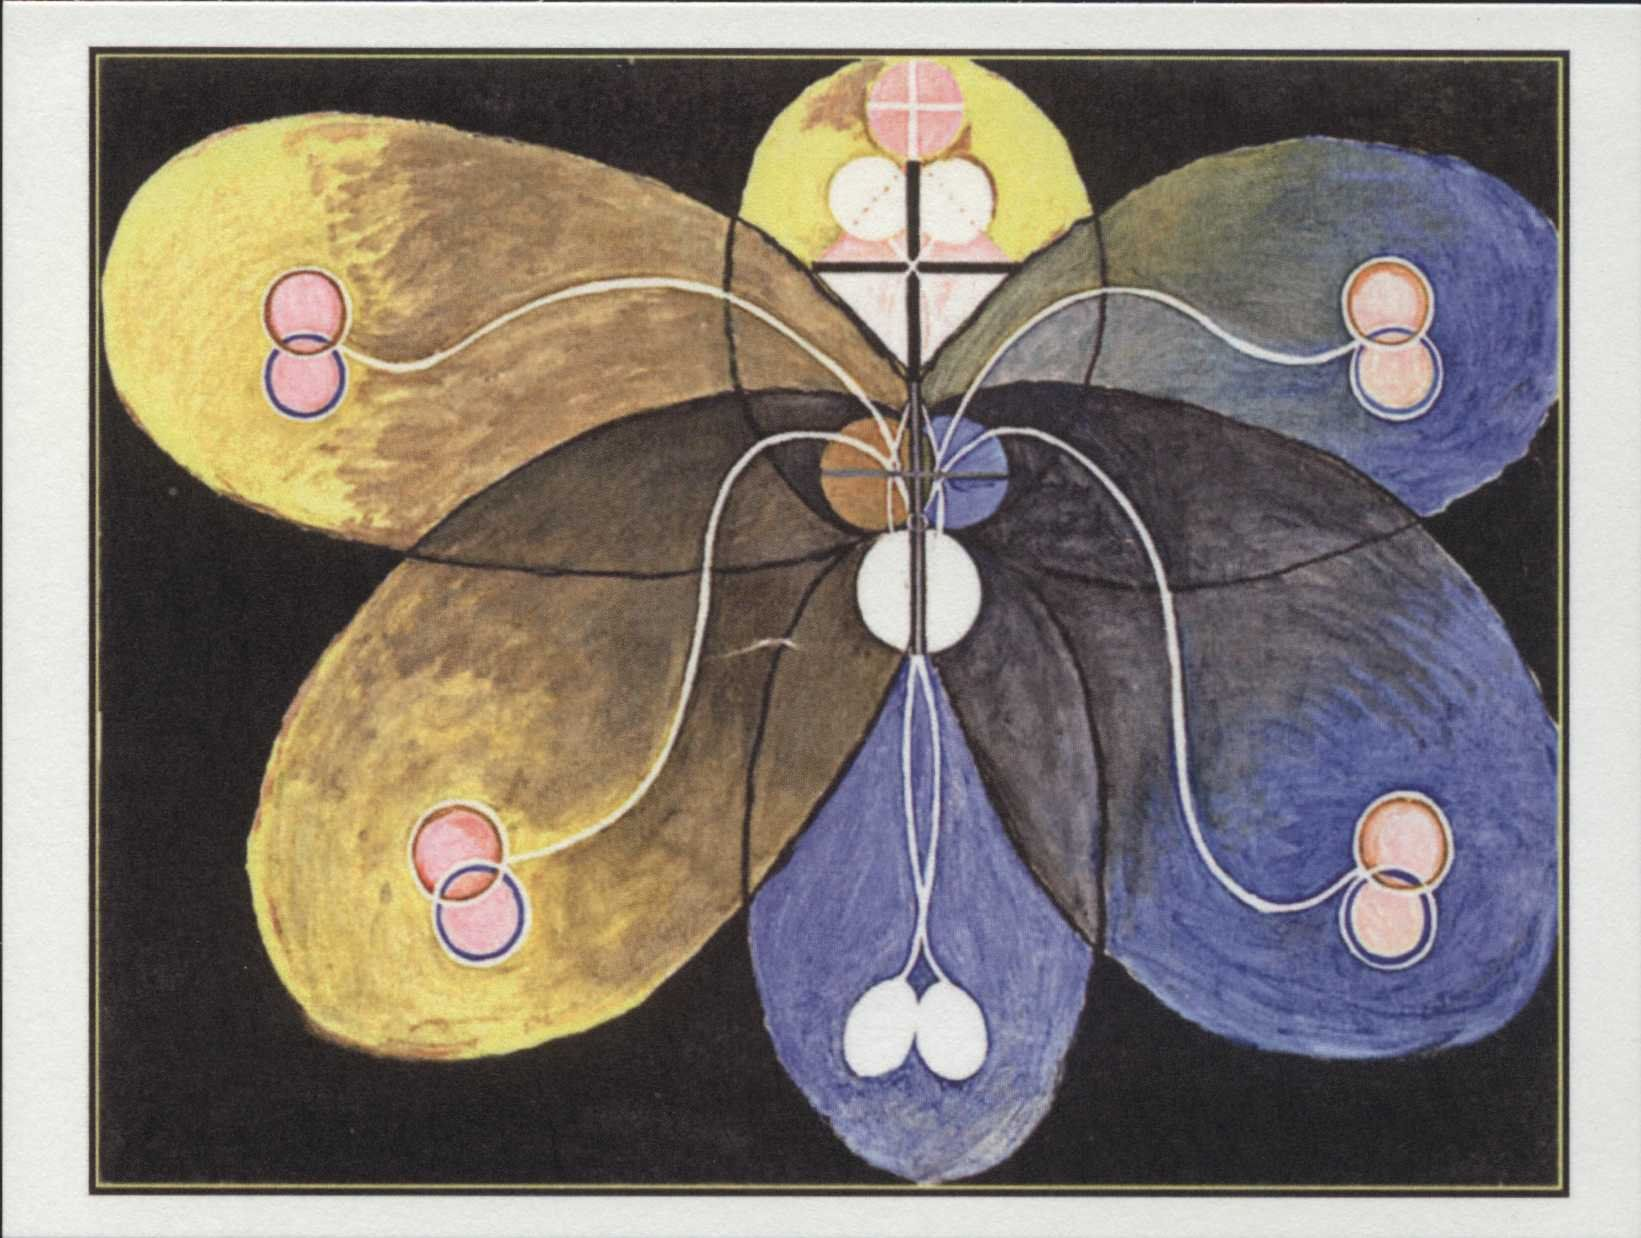 Art, Hilma af Klint, Evolution, No. 09, Group VI, 1906-1907, Modern, Museum  Quality, Postcard Z657536 by markopostca… | Hilma af klint, Stretched  canvas prints, Art